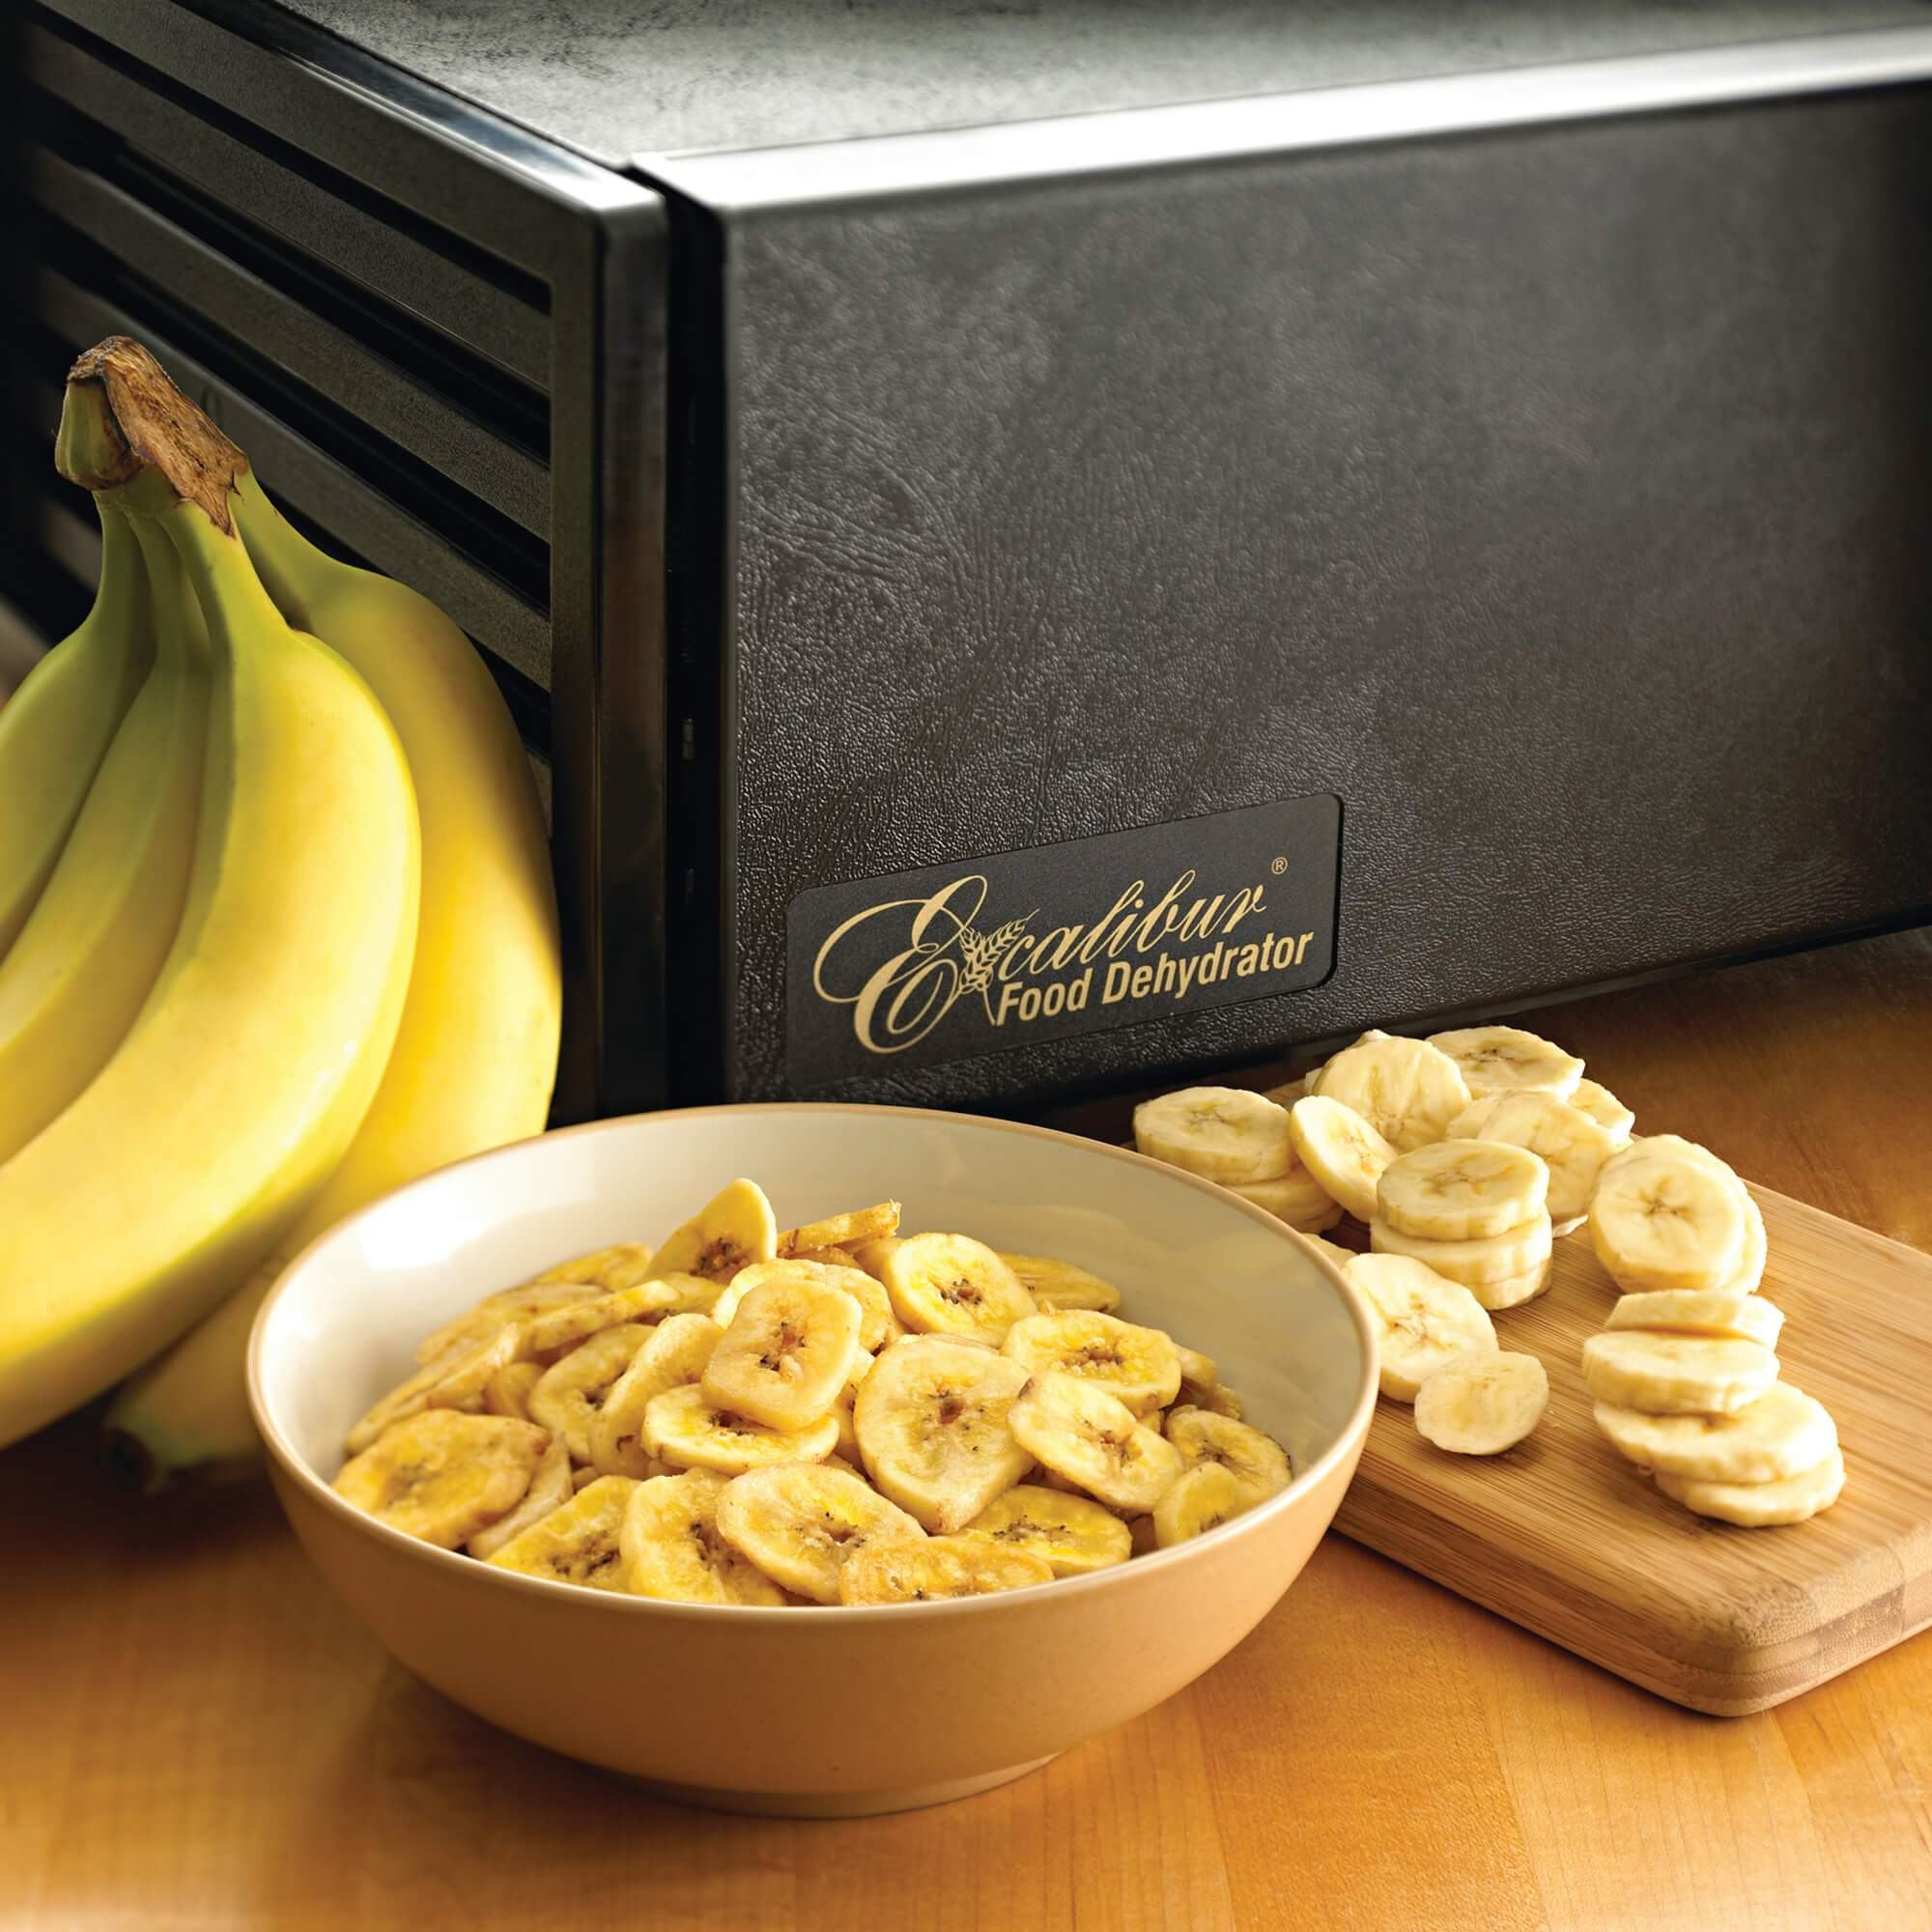 Excalibur 4500 5 tray dehydrator with banana chips in a bowl.